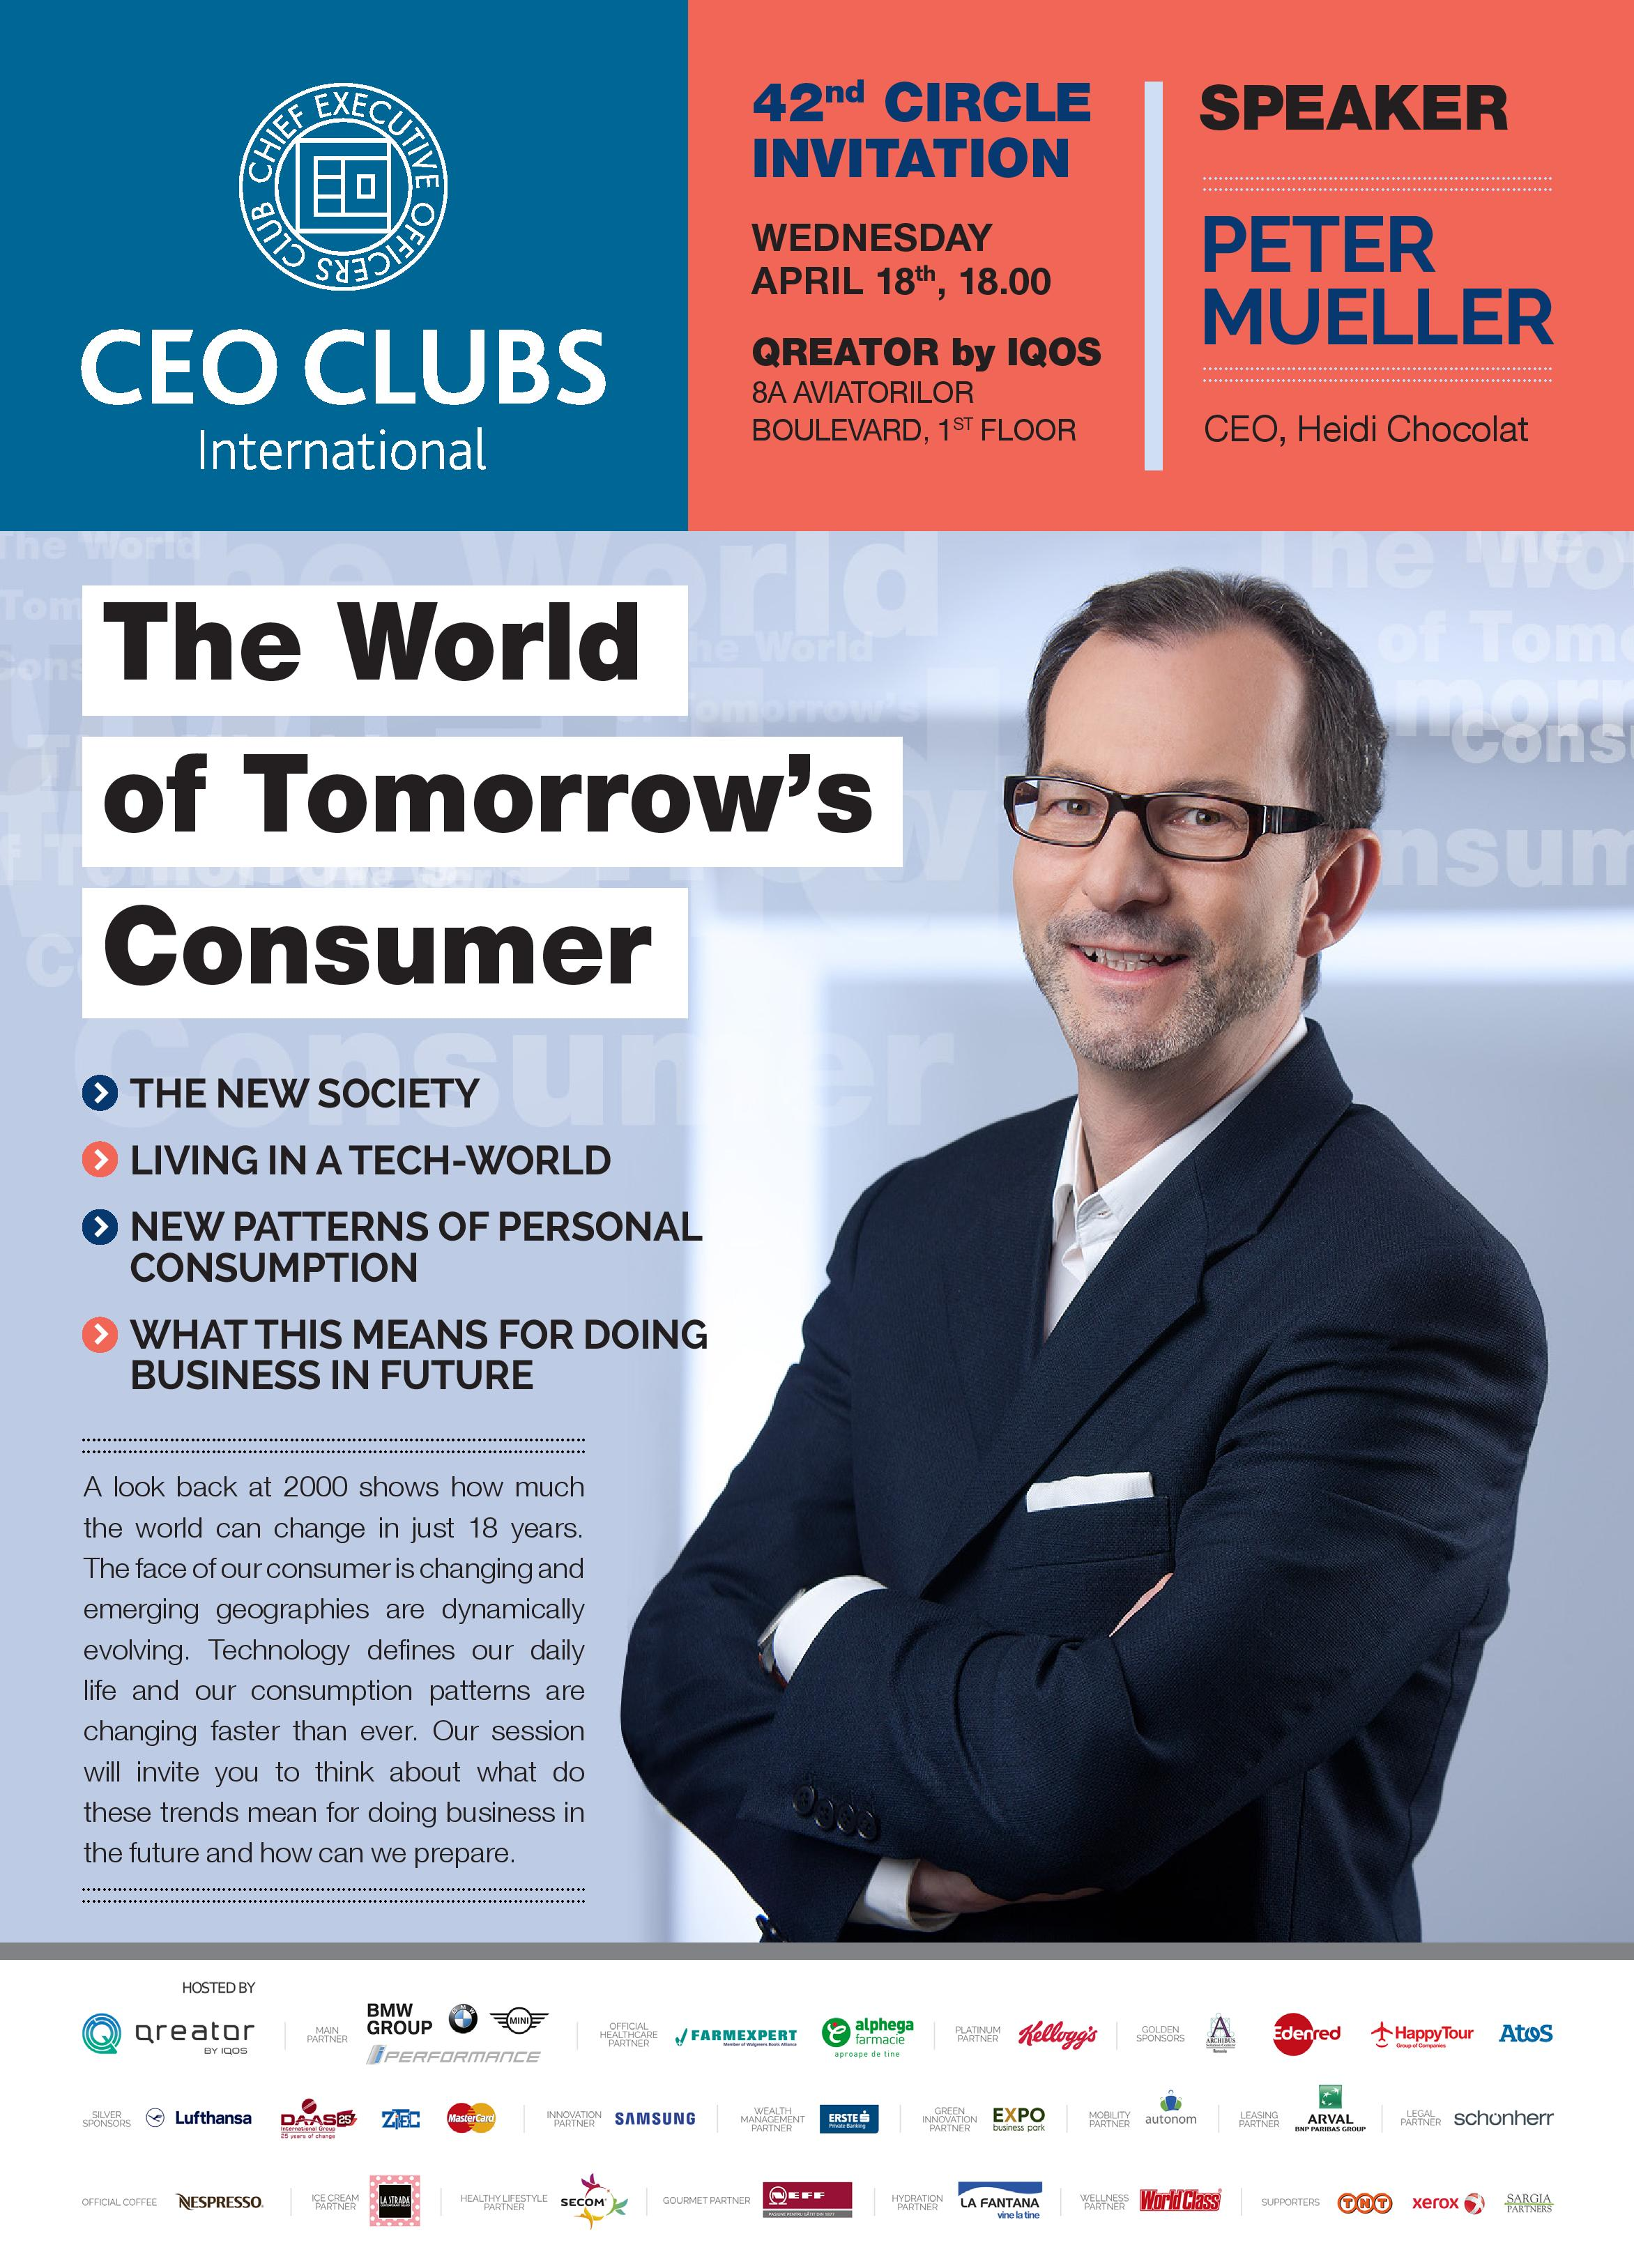 The 42nd Circle: The World of Tomorrow's Consumer